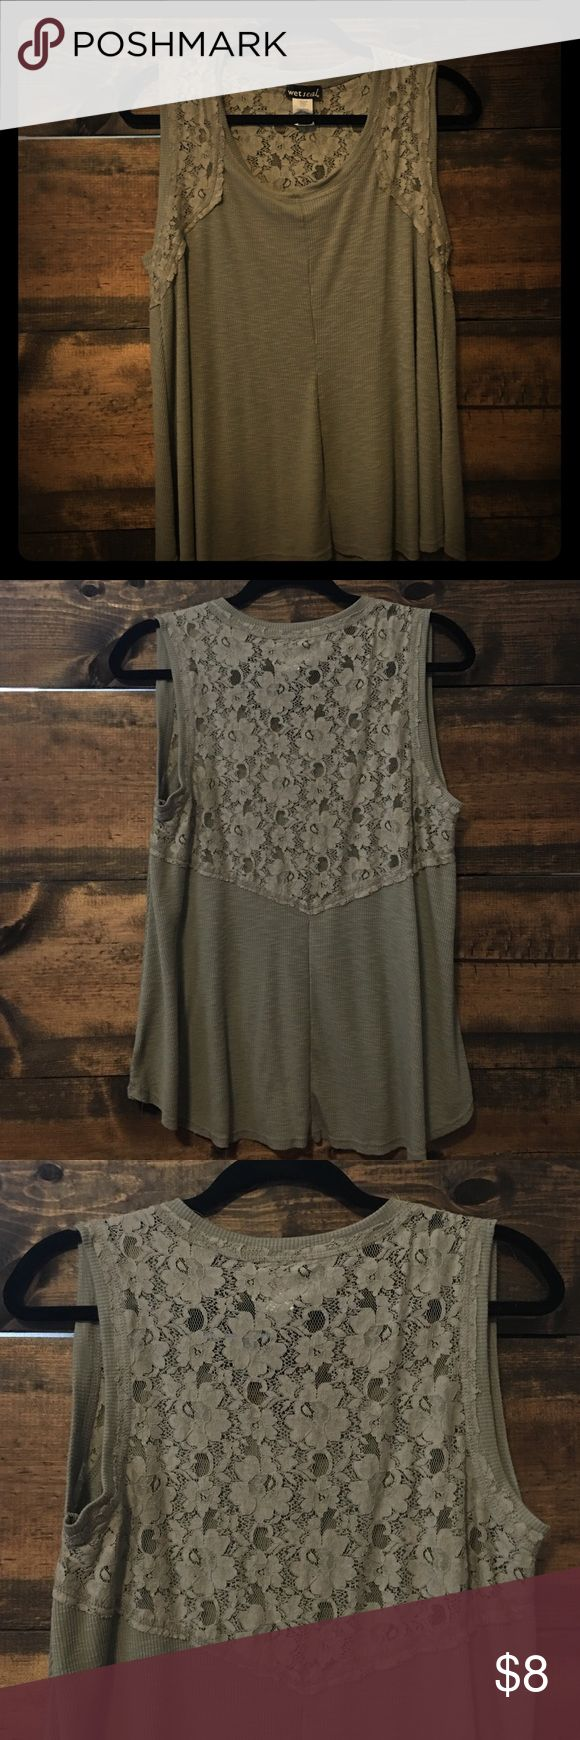 Army green tank top Worn once army light army green tank top with lace detail. You can see thru the lace detailing. Size large. Wet Seal Tops Tank Tops